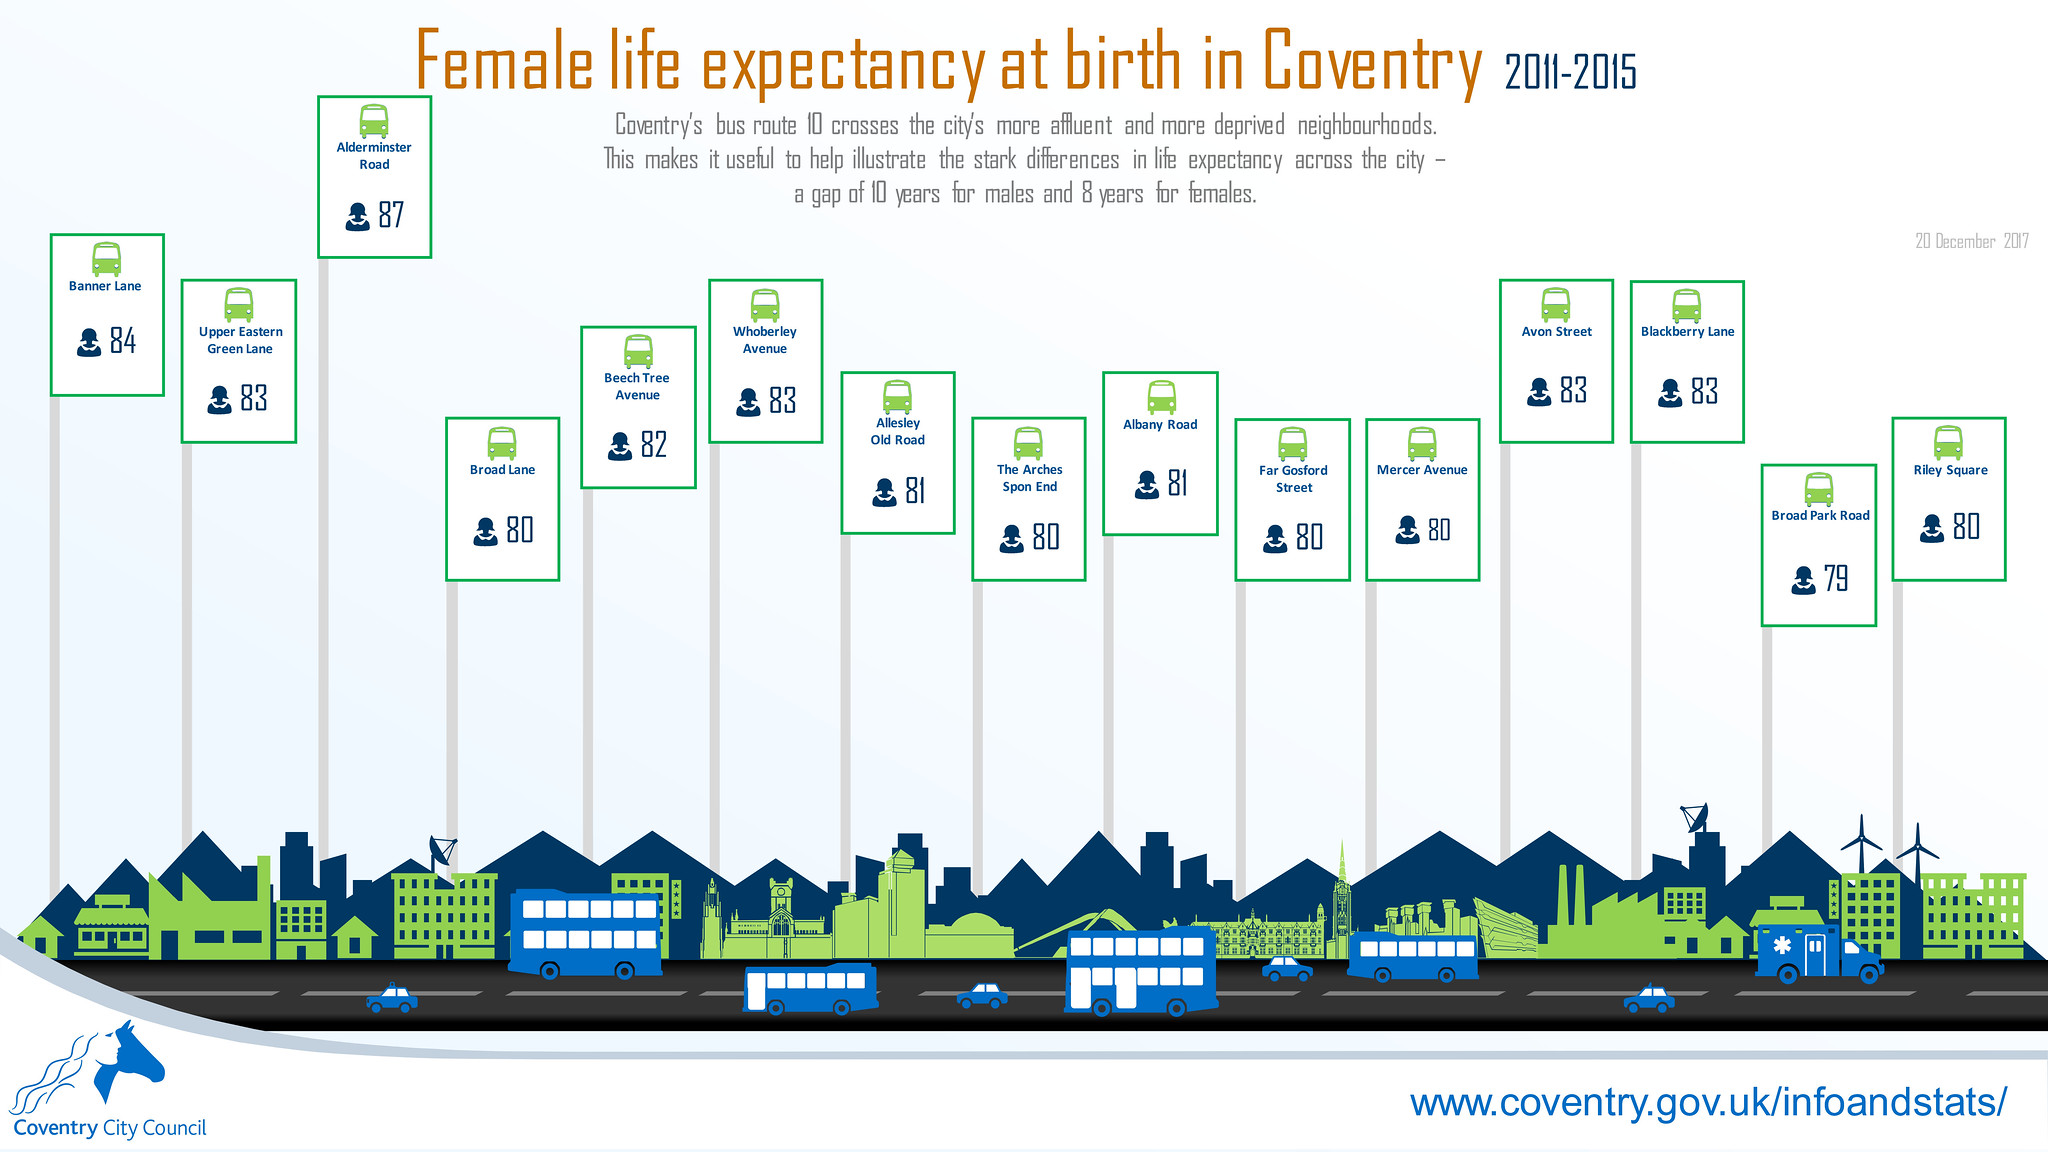 Female life expectancy along Coventry bus route 10 infographic (December 2017)